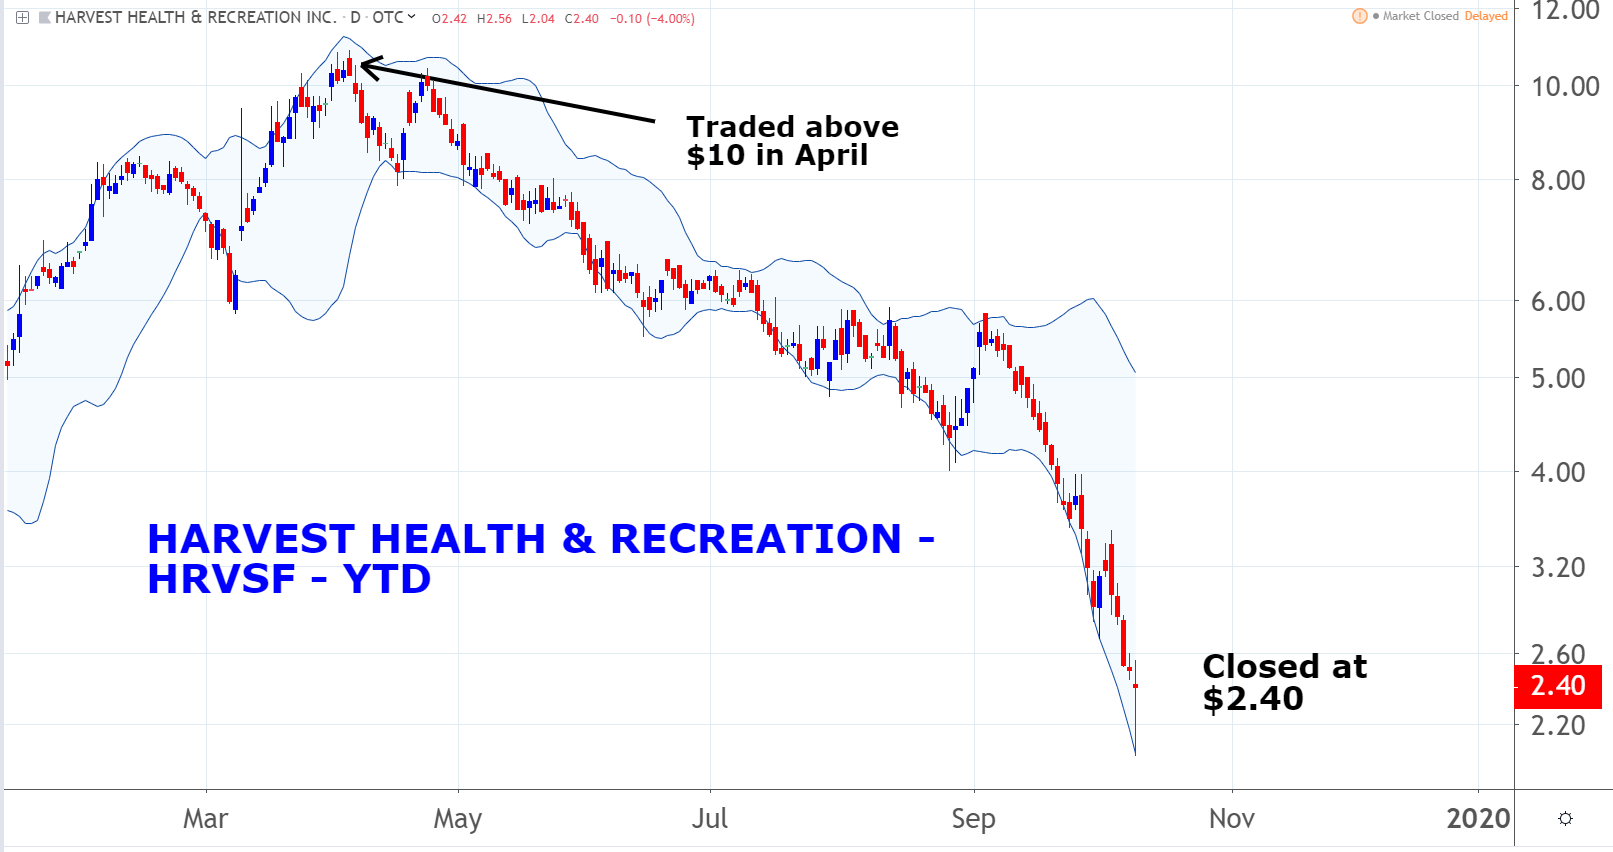 Marijuana Penny Stocks to Consider: Harvest Health & Recreation Inc. (HRVSF)